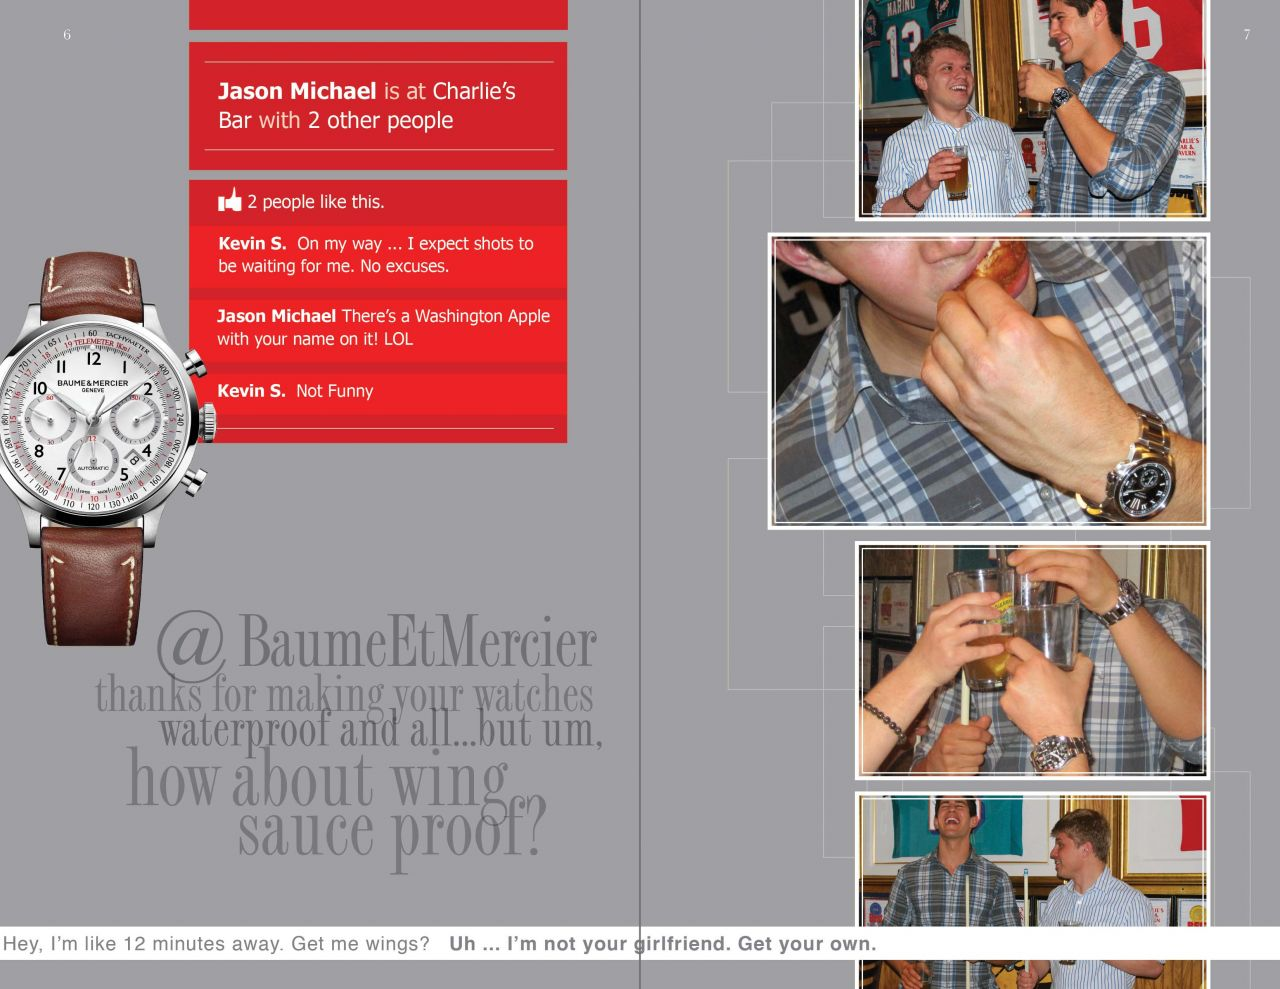 Baume & Mercier product shots get a nice play in this layout with Jason and some friends